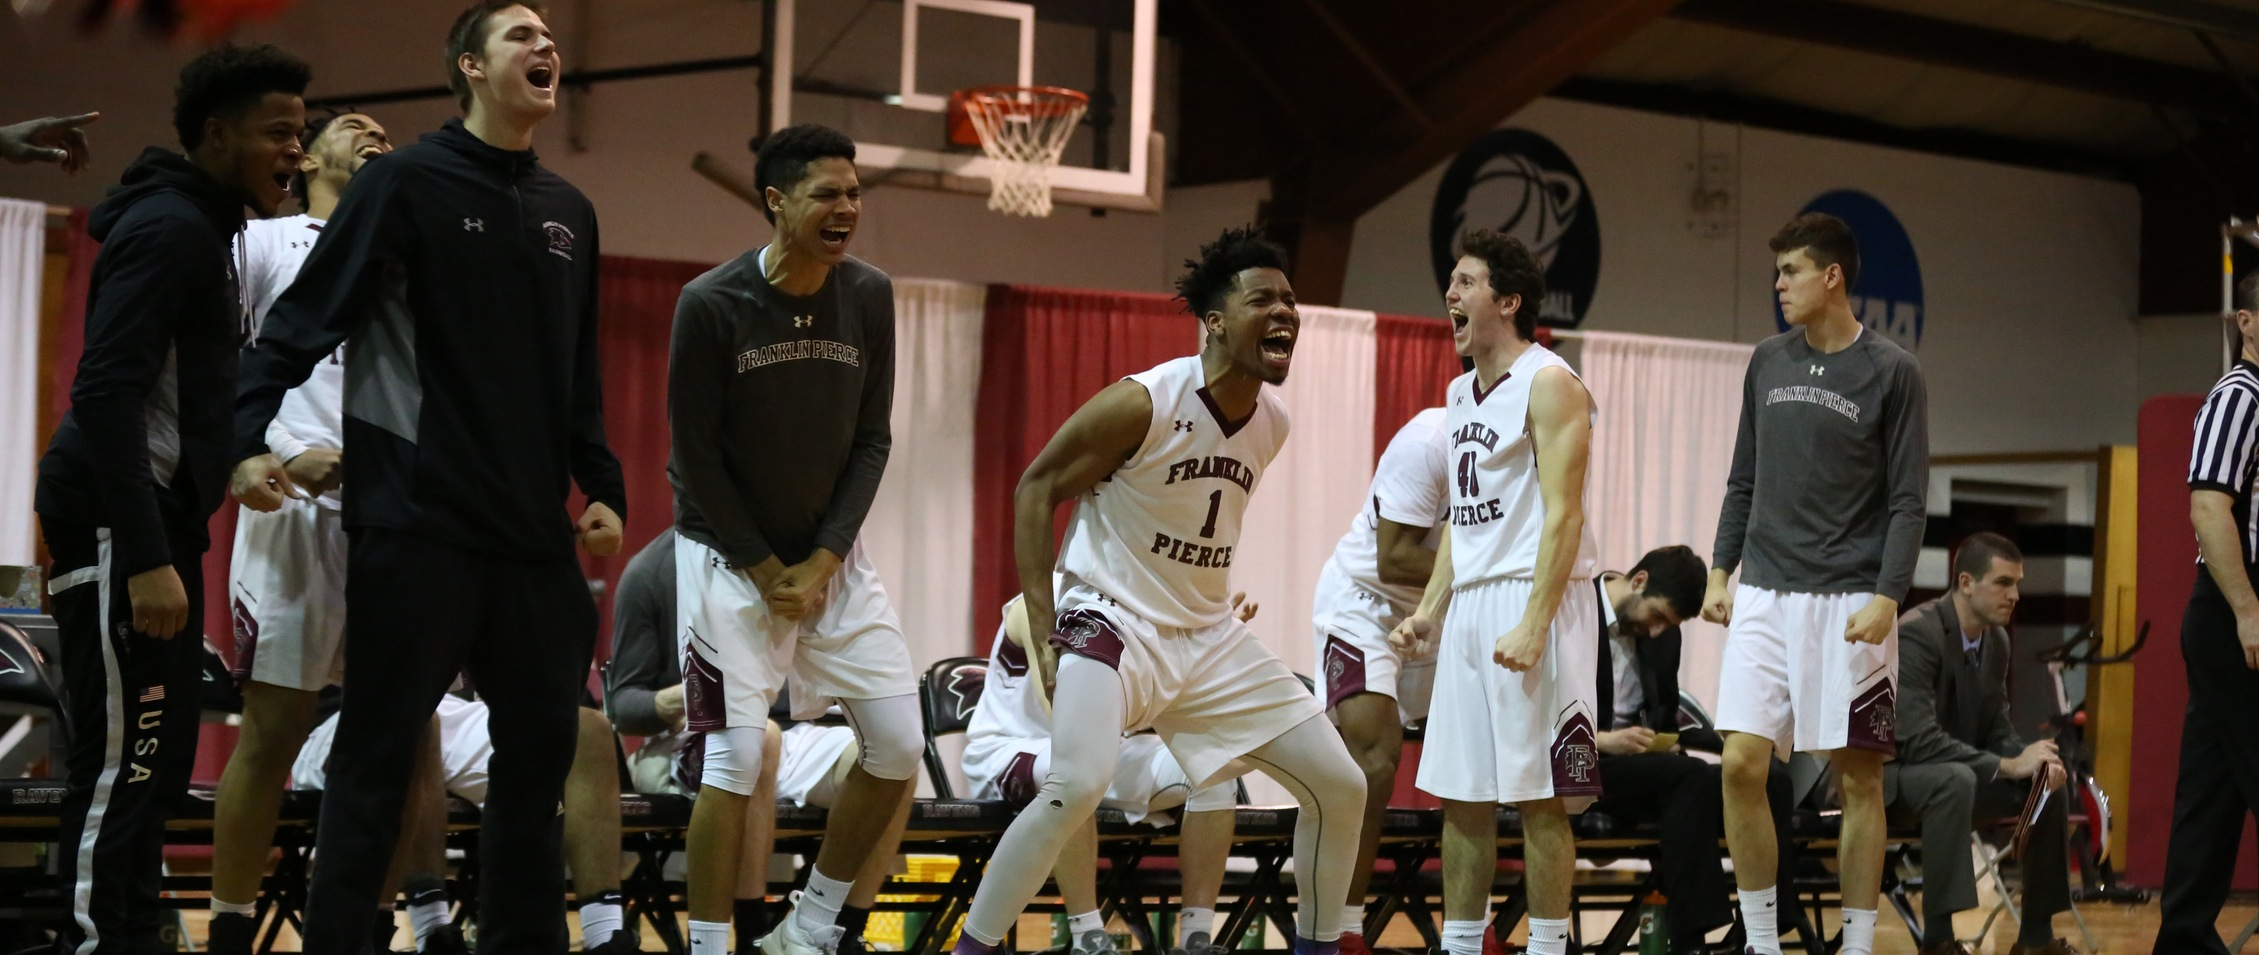 The Raven bench celebrates during their win against American International (Photo Courtesy of Luke Tracy)